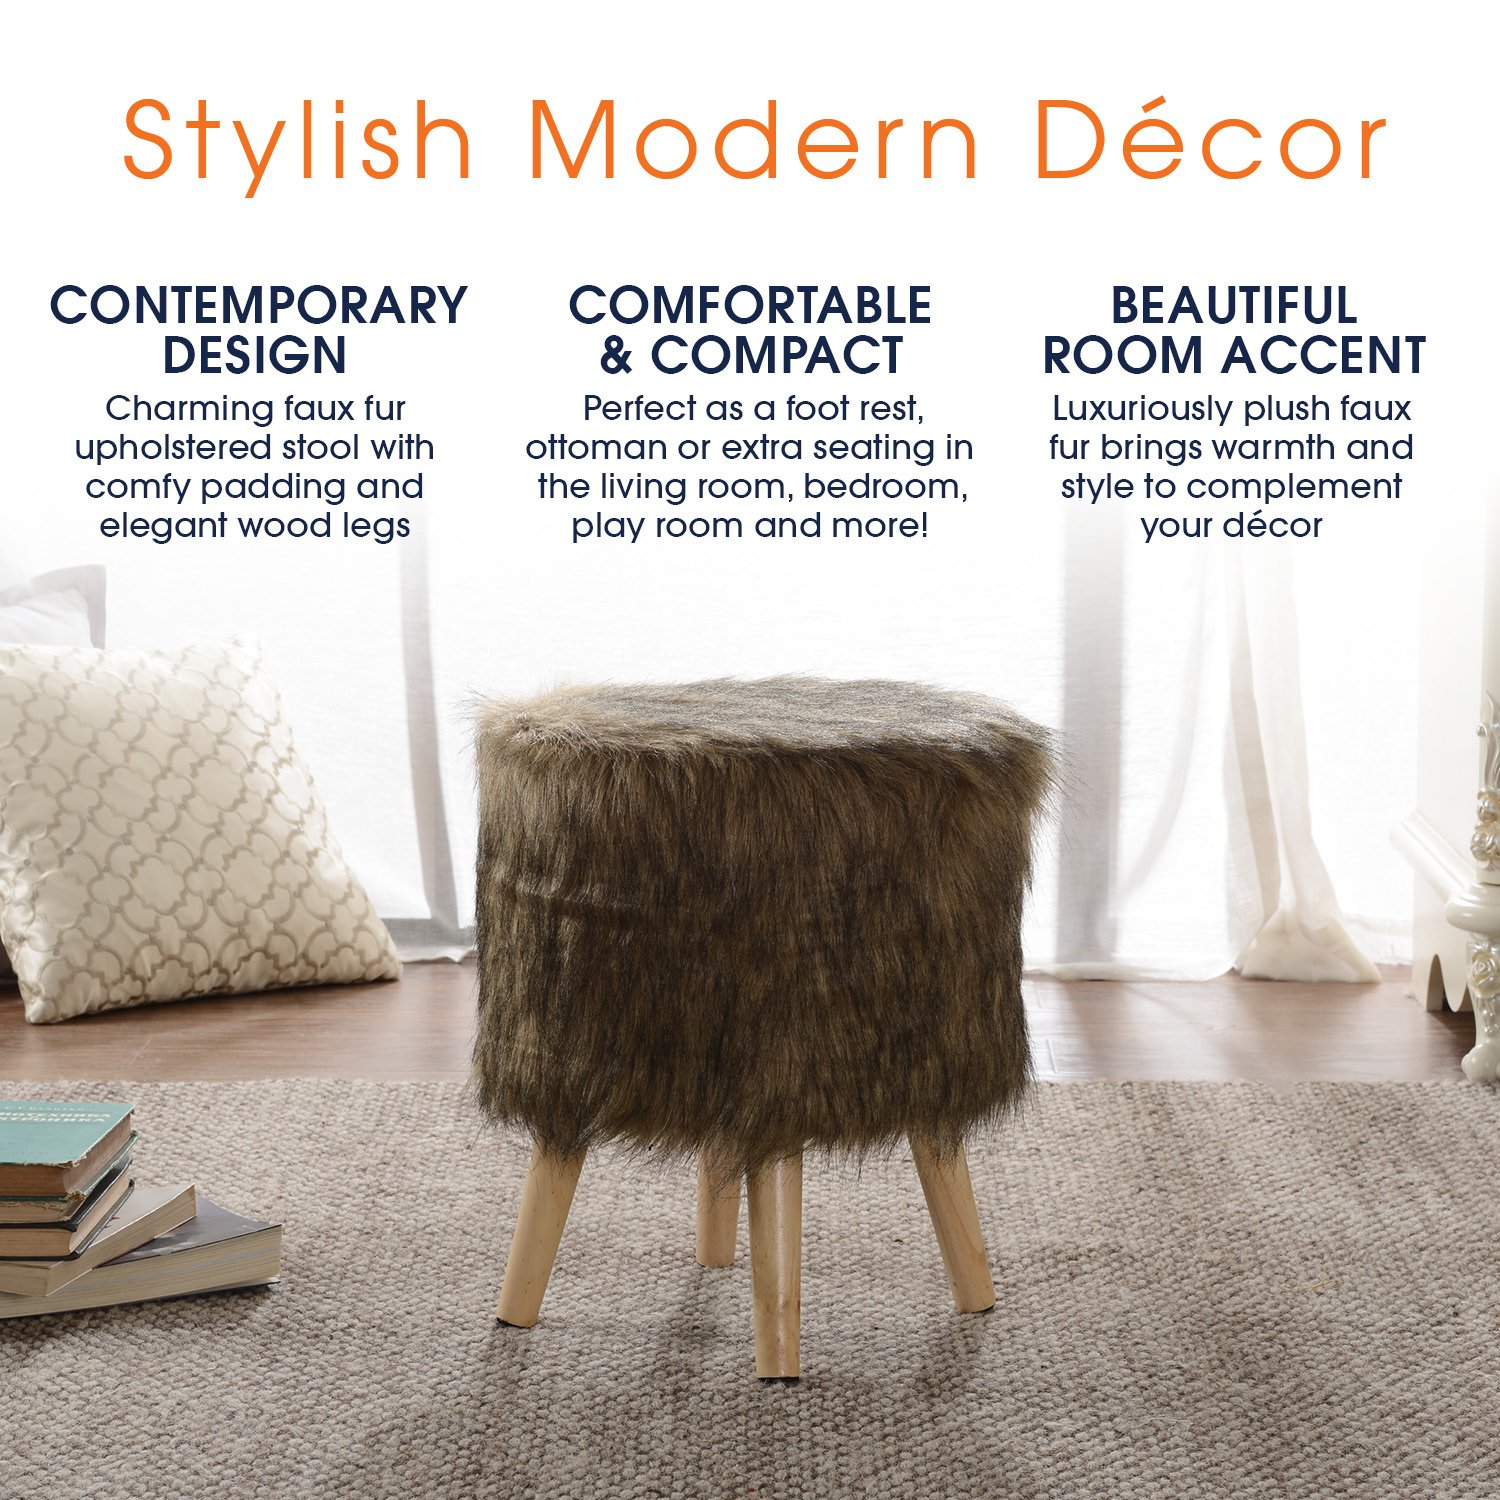 Cheer Collection 13'' Round Ottoman | Super Soft Decorative Brown Mink Faux Fur Foot Stool with Wood Legs by Cheer Collection (Image #4)